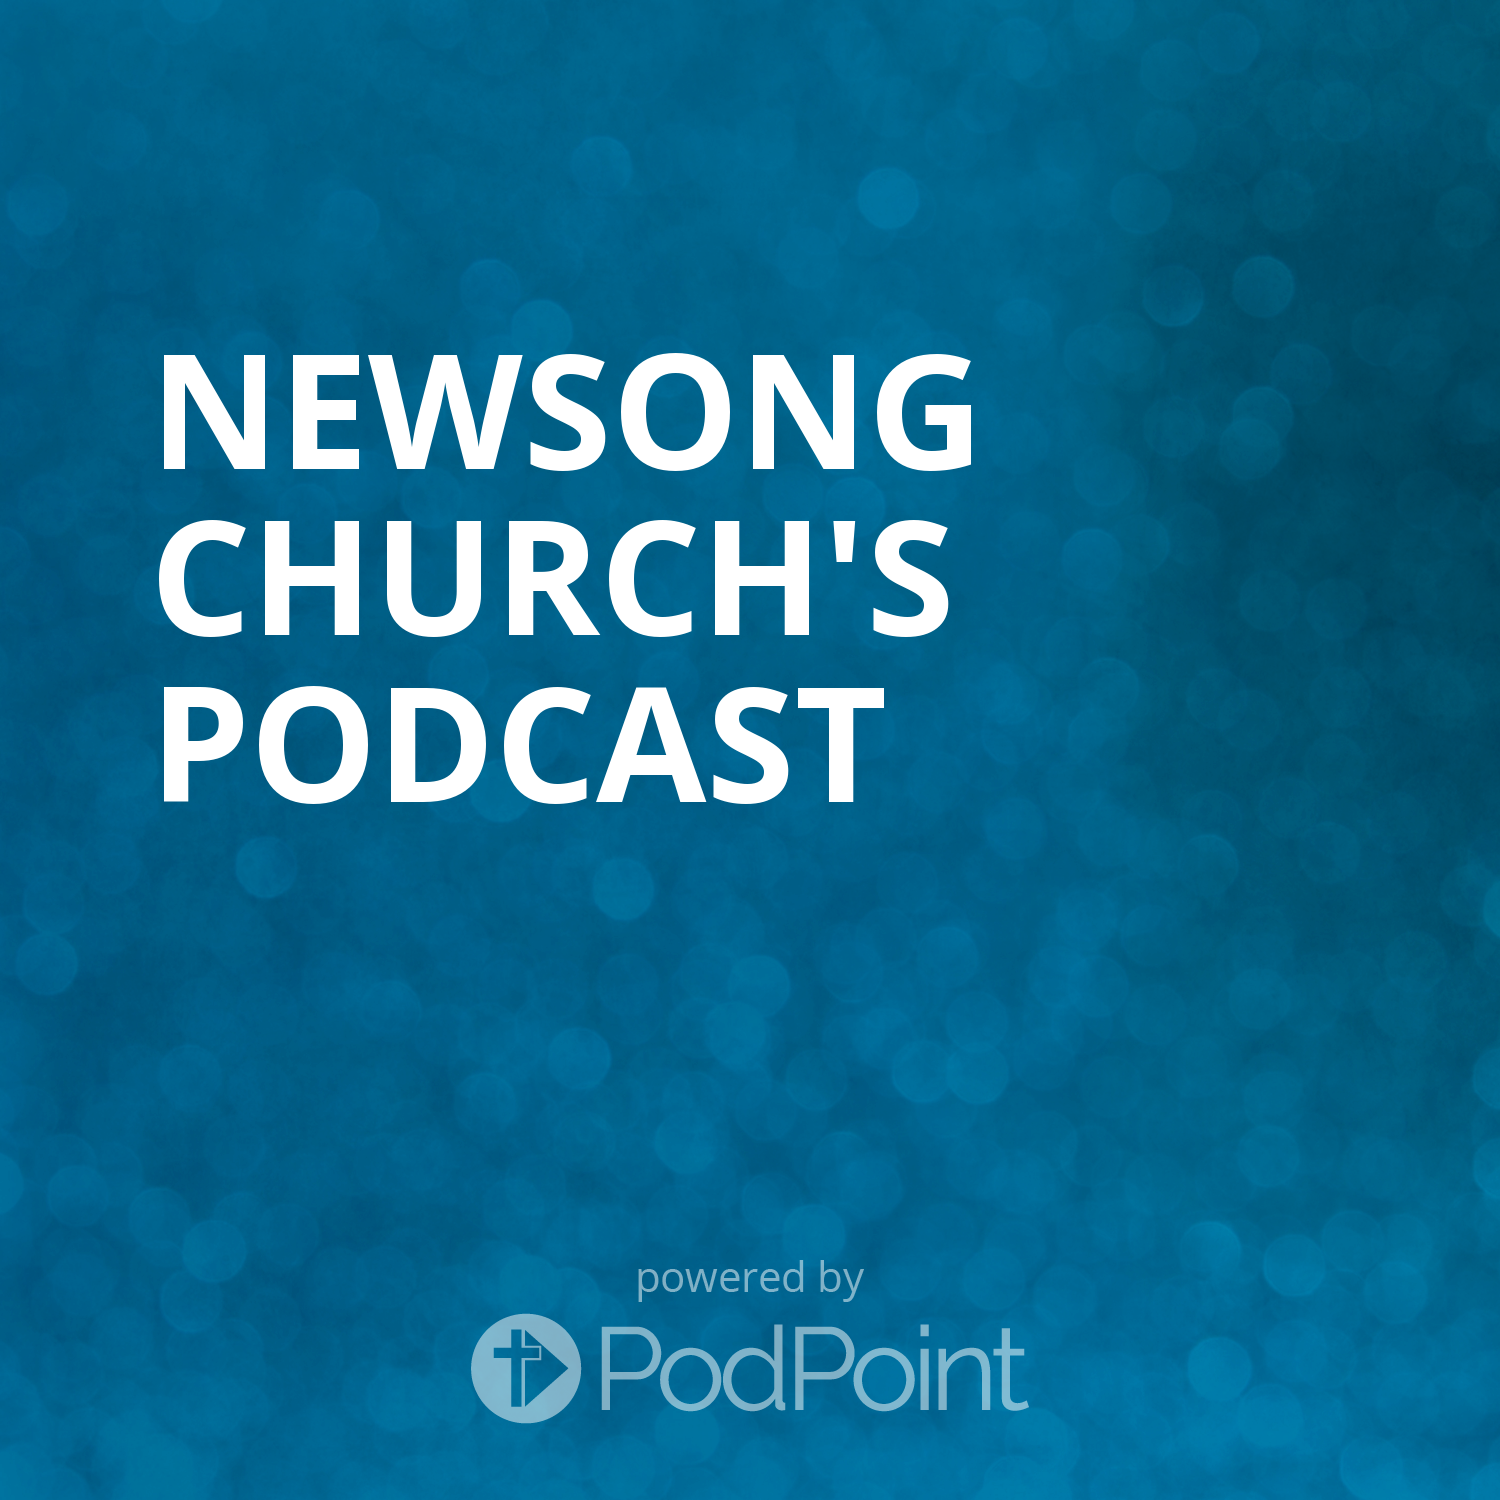 Newsong Church's Podcast